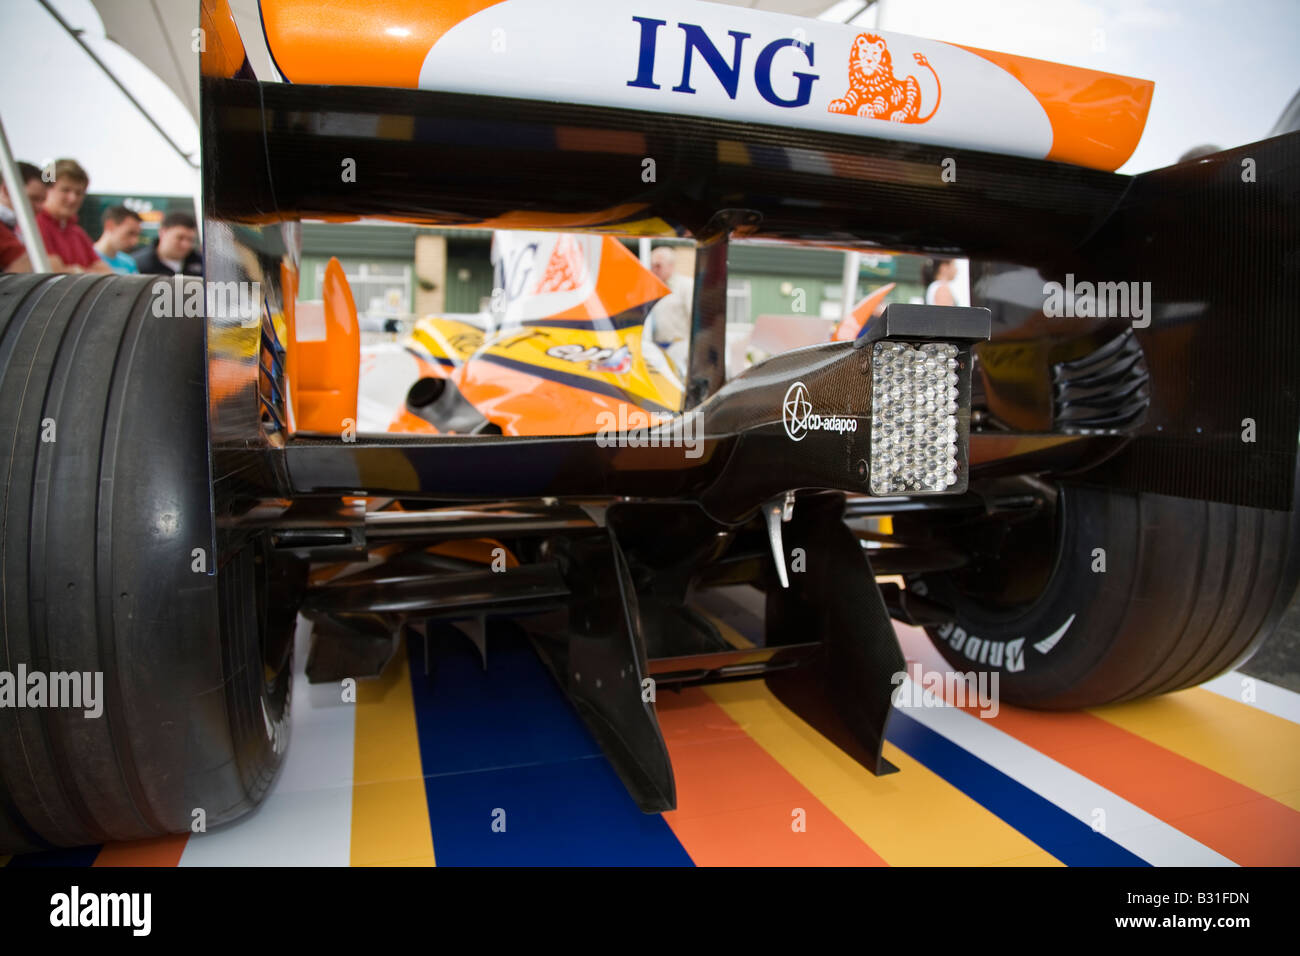 Renault Elf R28 Formula 1 One car rear wing and rain light - Stock Image